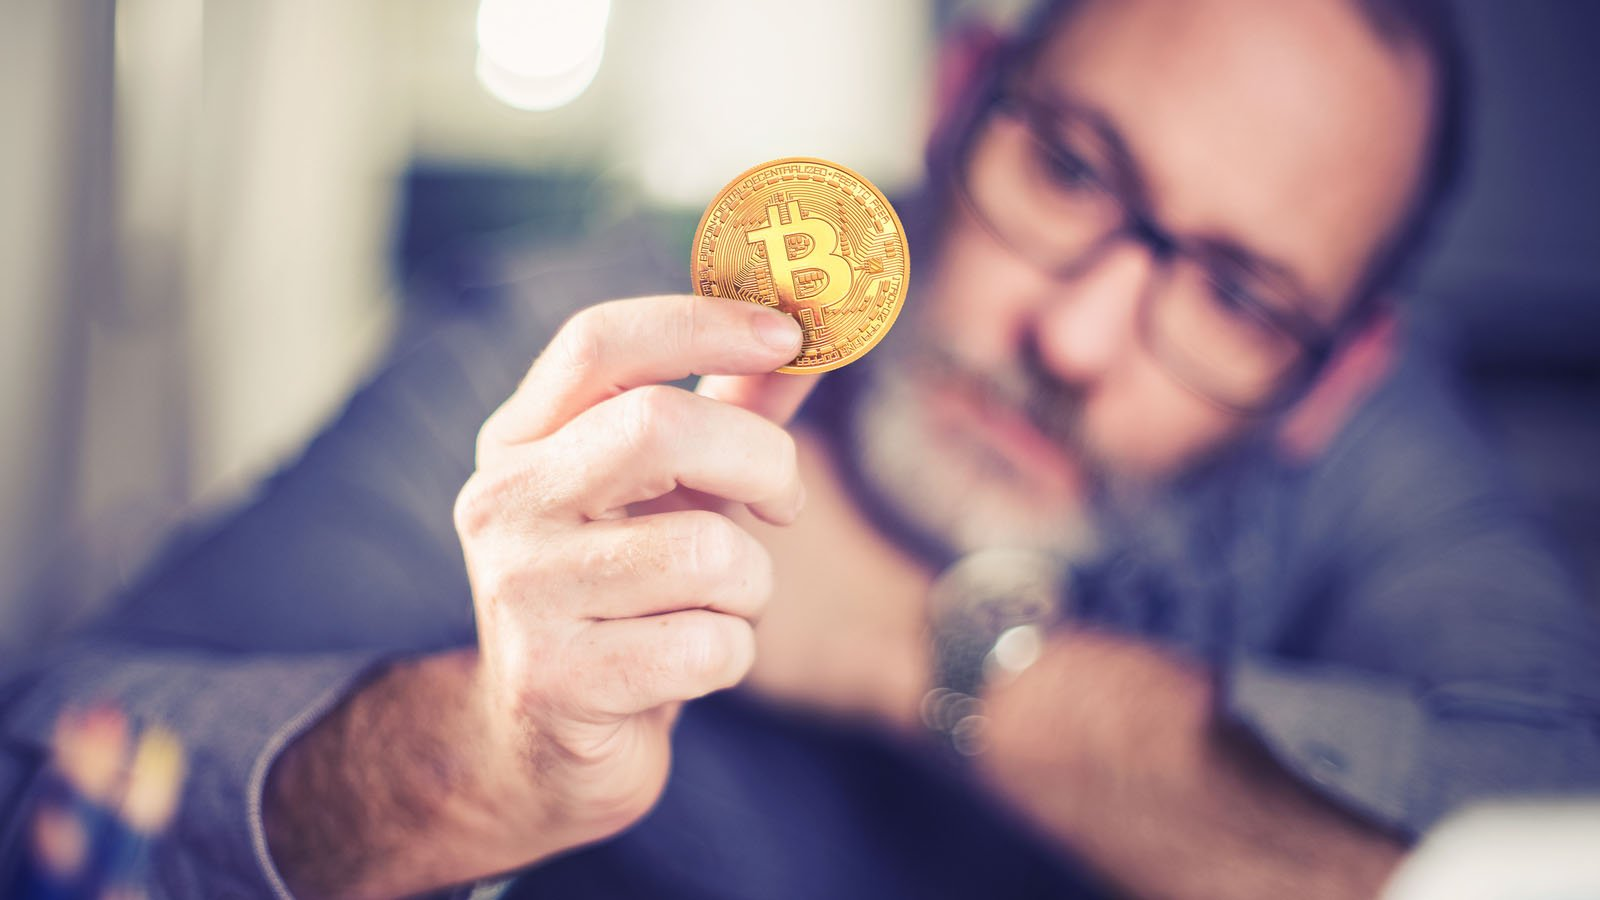 Access here alternative investment news about Bitcoin Isn't A Scam, But It's Not Right For Me Either